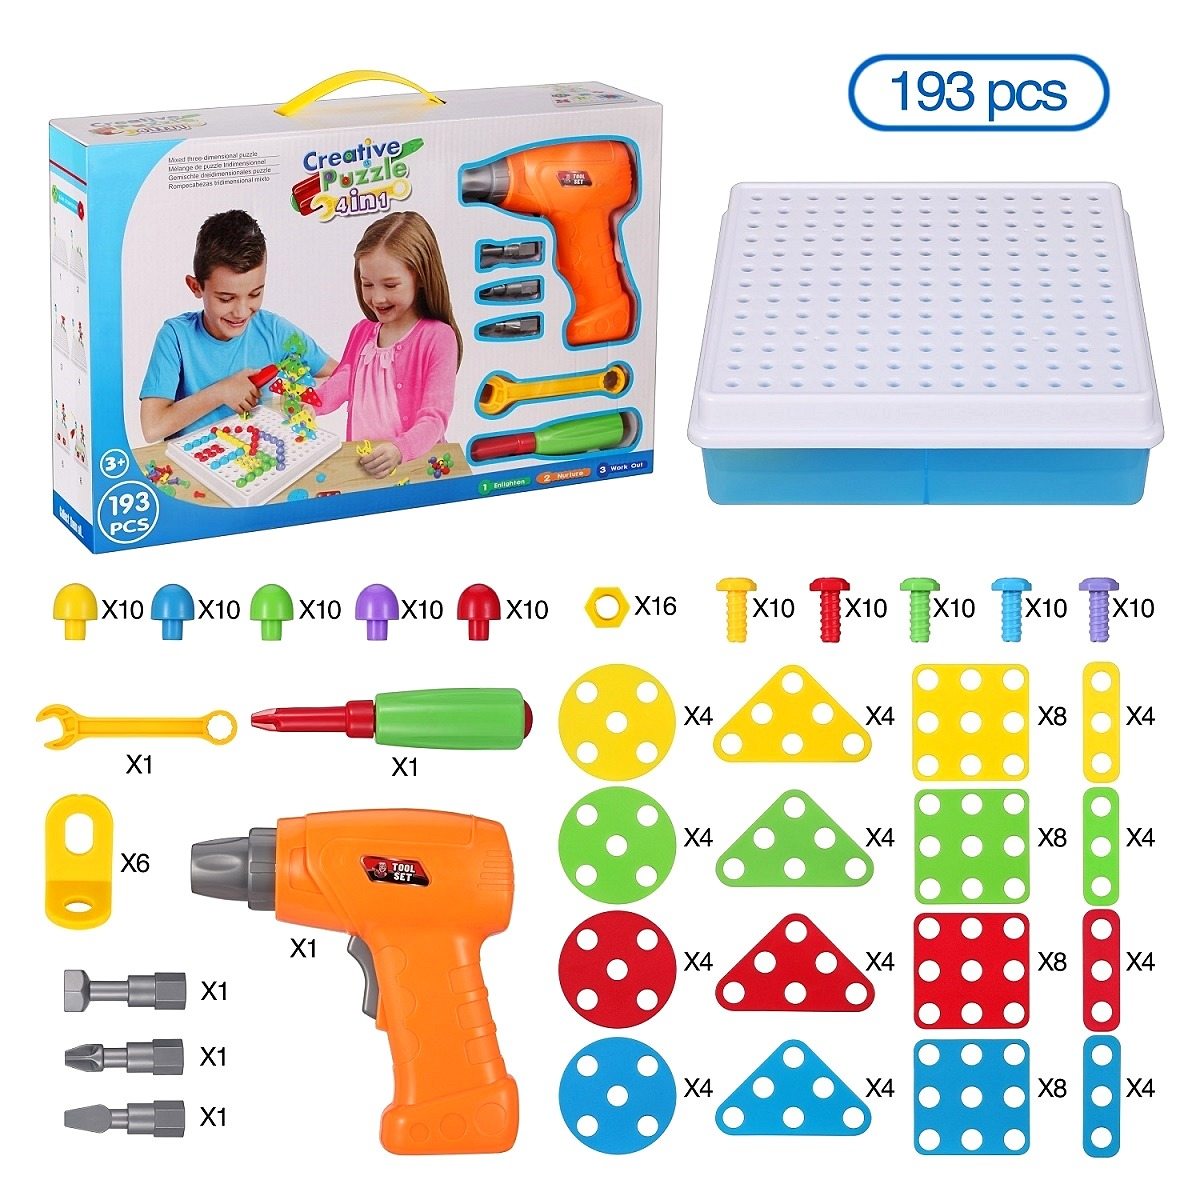 STEM Learning Toys Drill Play Creative Educational Games Mosaic Design Kit Construction Engineering Building Blocks Pretend Play